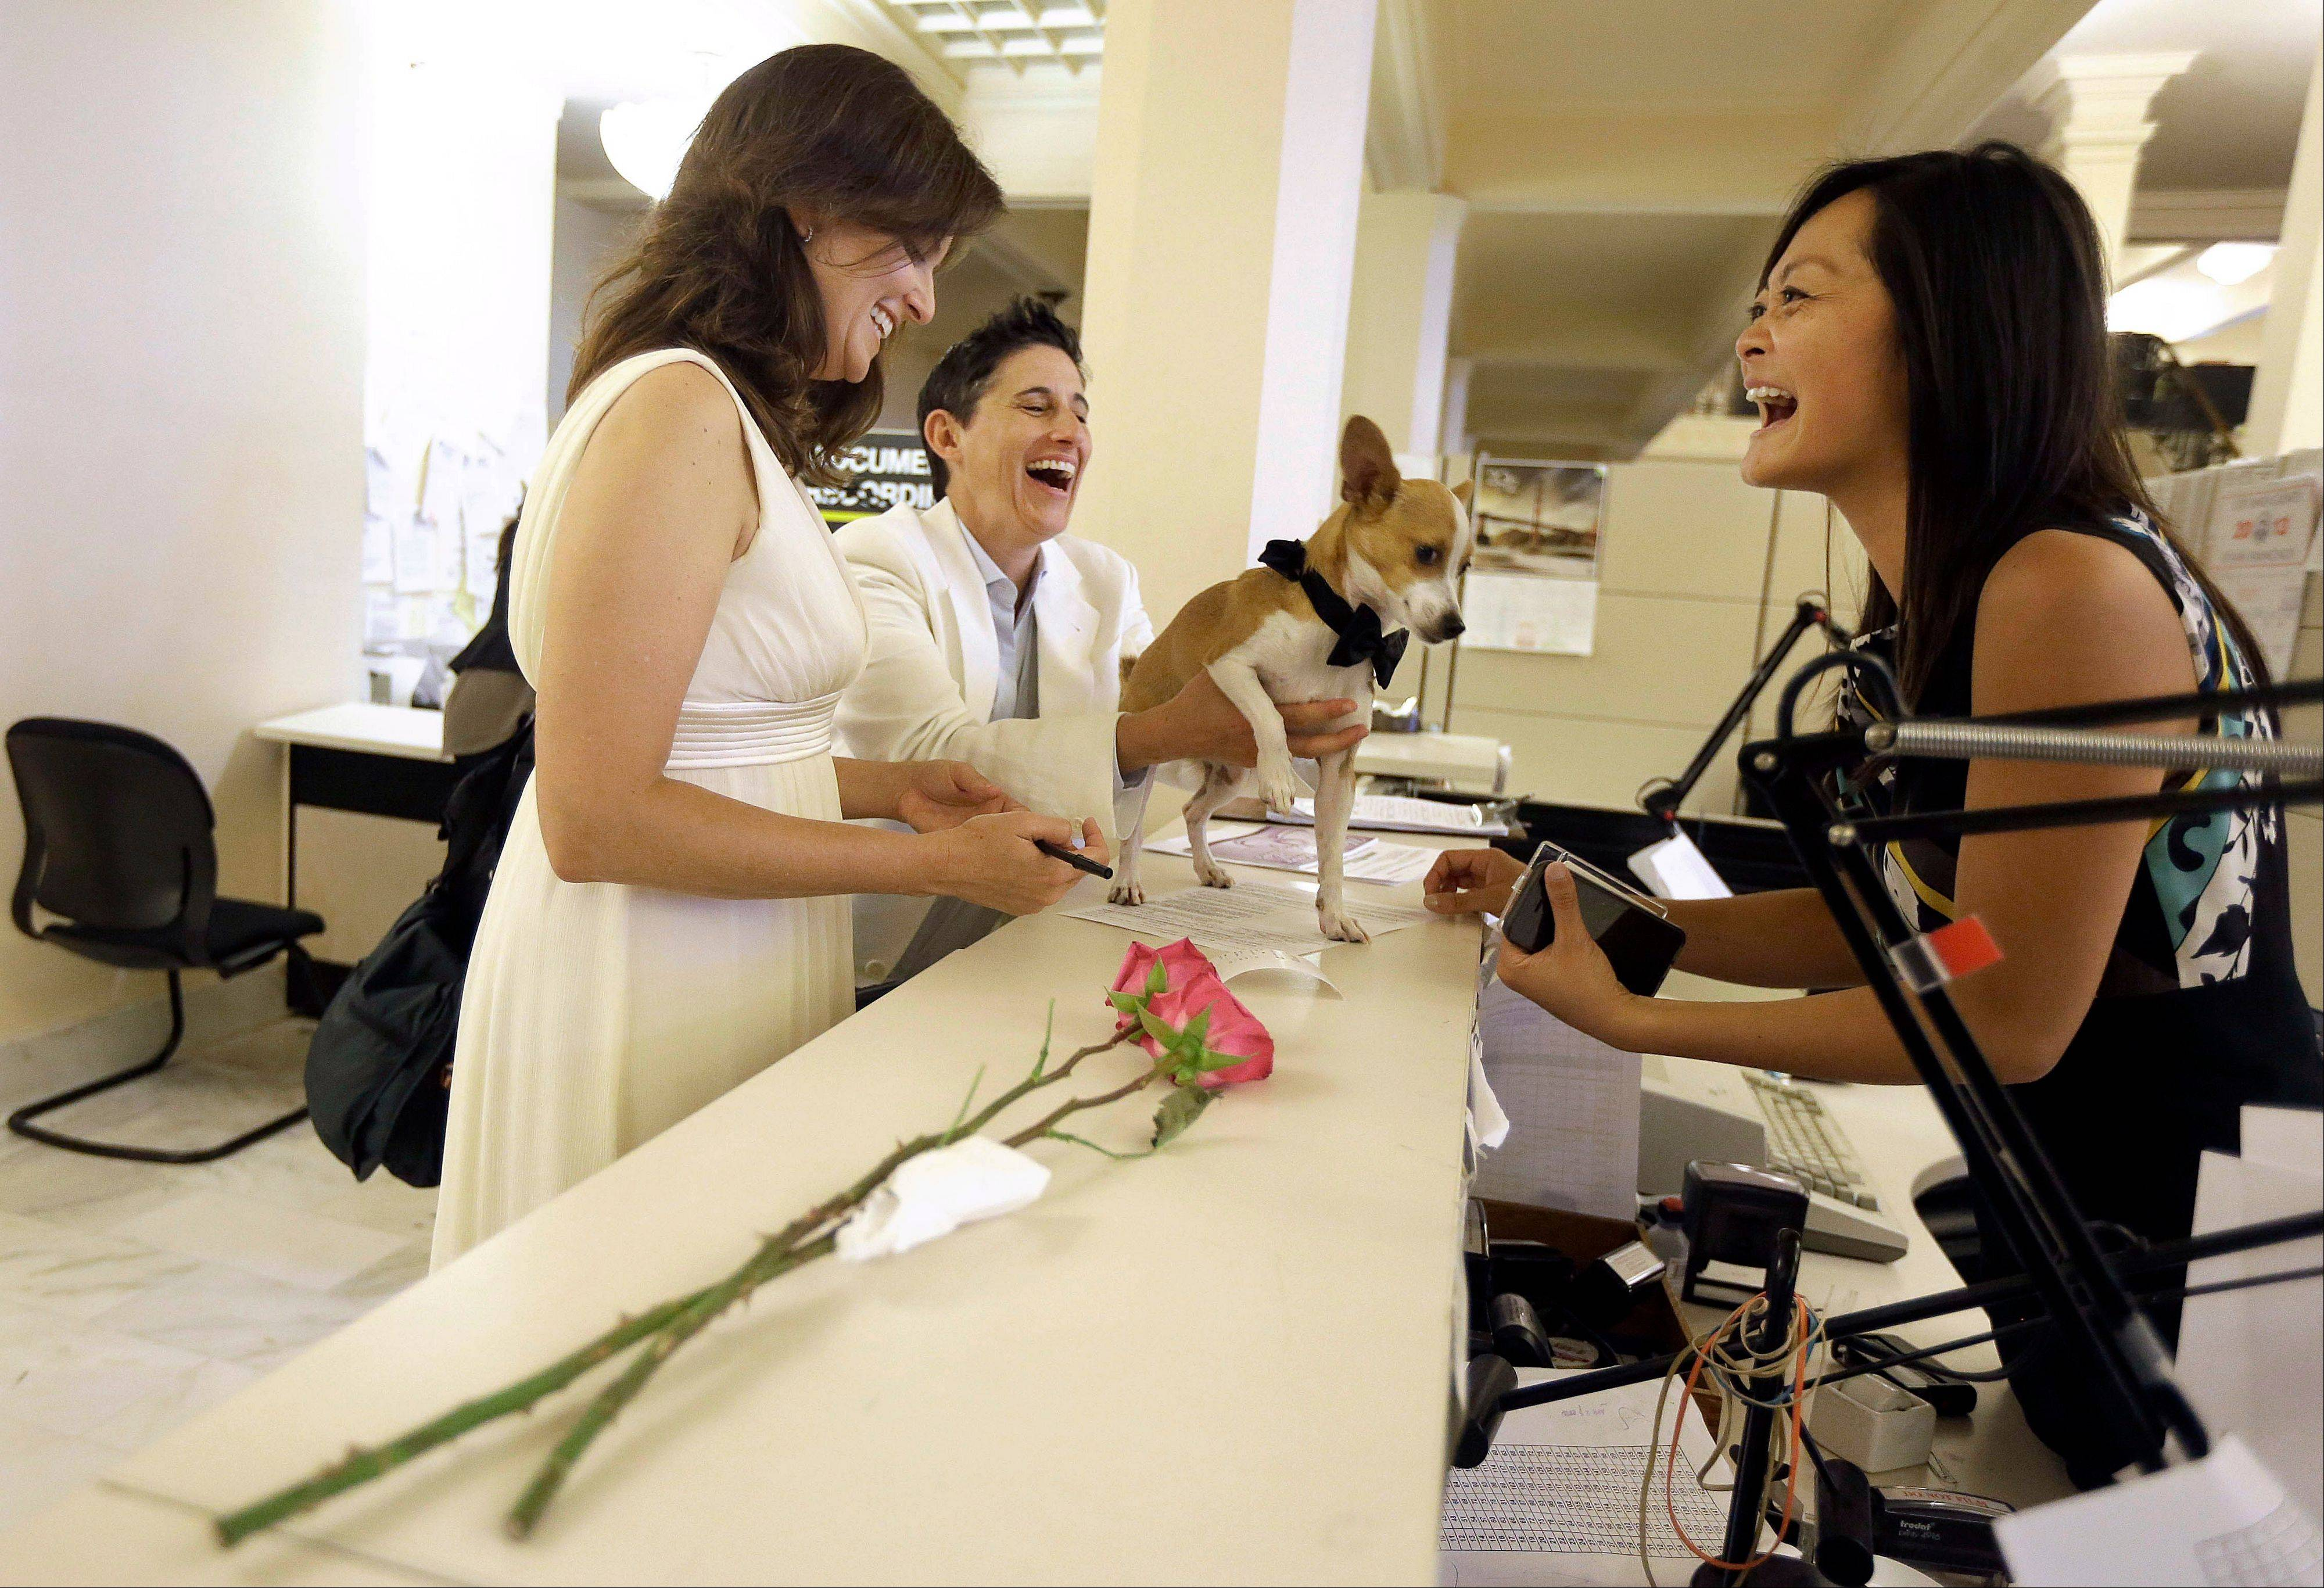 "Assessor-Recorder Carmen Chu, right, laughs as Jen, left, and Frances Rainin's dog Punum climbs on the counter as they fill out paper work for their marriage certificate after they were married at City Hall in San Francisco, Friday, June 28, 2013. A three-judge panel of the 9th U.S. Circuit Court of Appeals issued a brief order Friday afternoon dissolving, ""effective immediately,"" a stay it imposed on gay marriages while the lawsuit challenging the ban advanced through the courts."